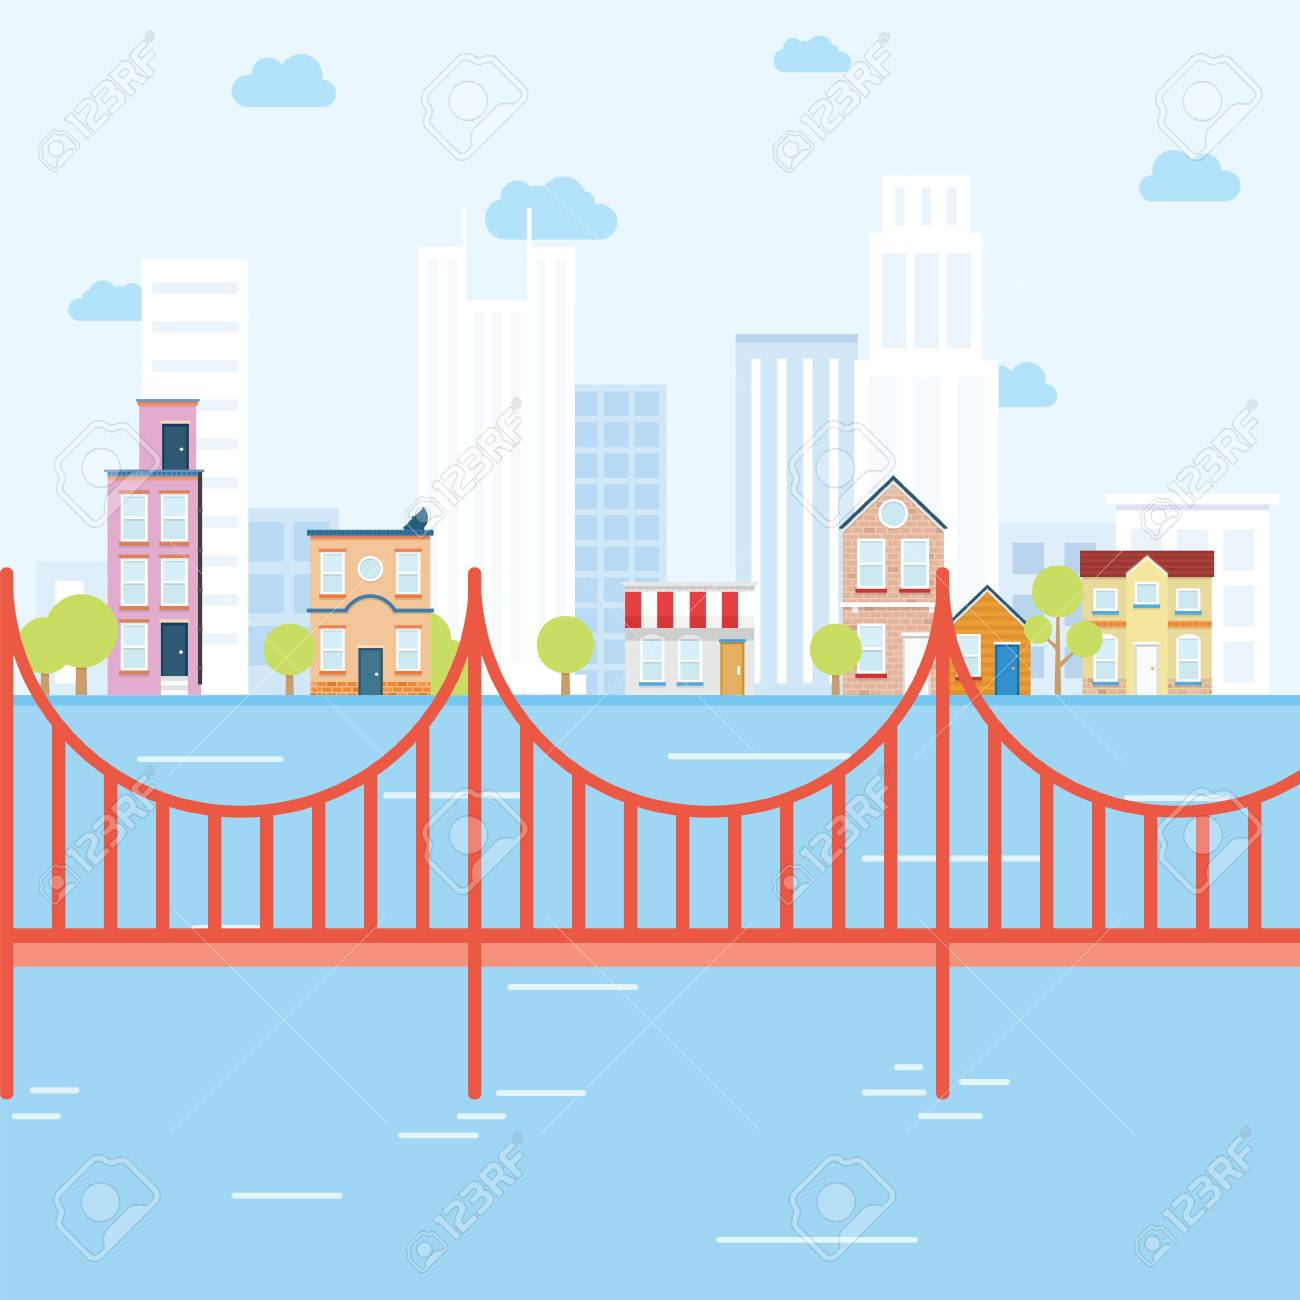 City concept with bridge that looks like san fransisco - 44186133